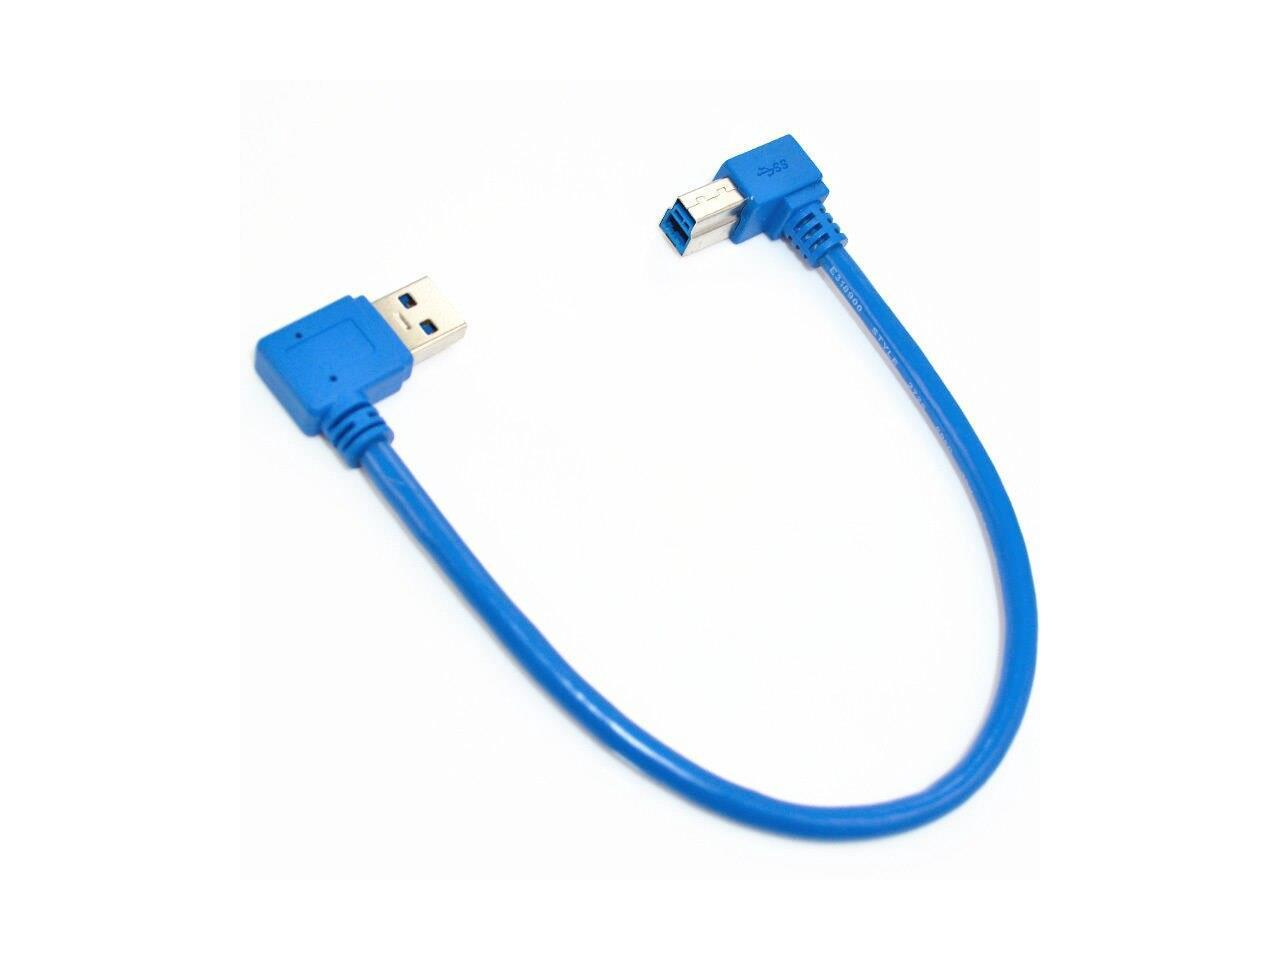 1 Foot, USB 2.0 A-Male//Micro B-male Networx Assorted USB Cables